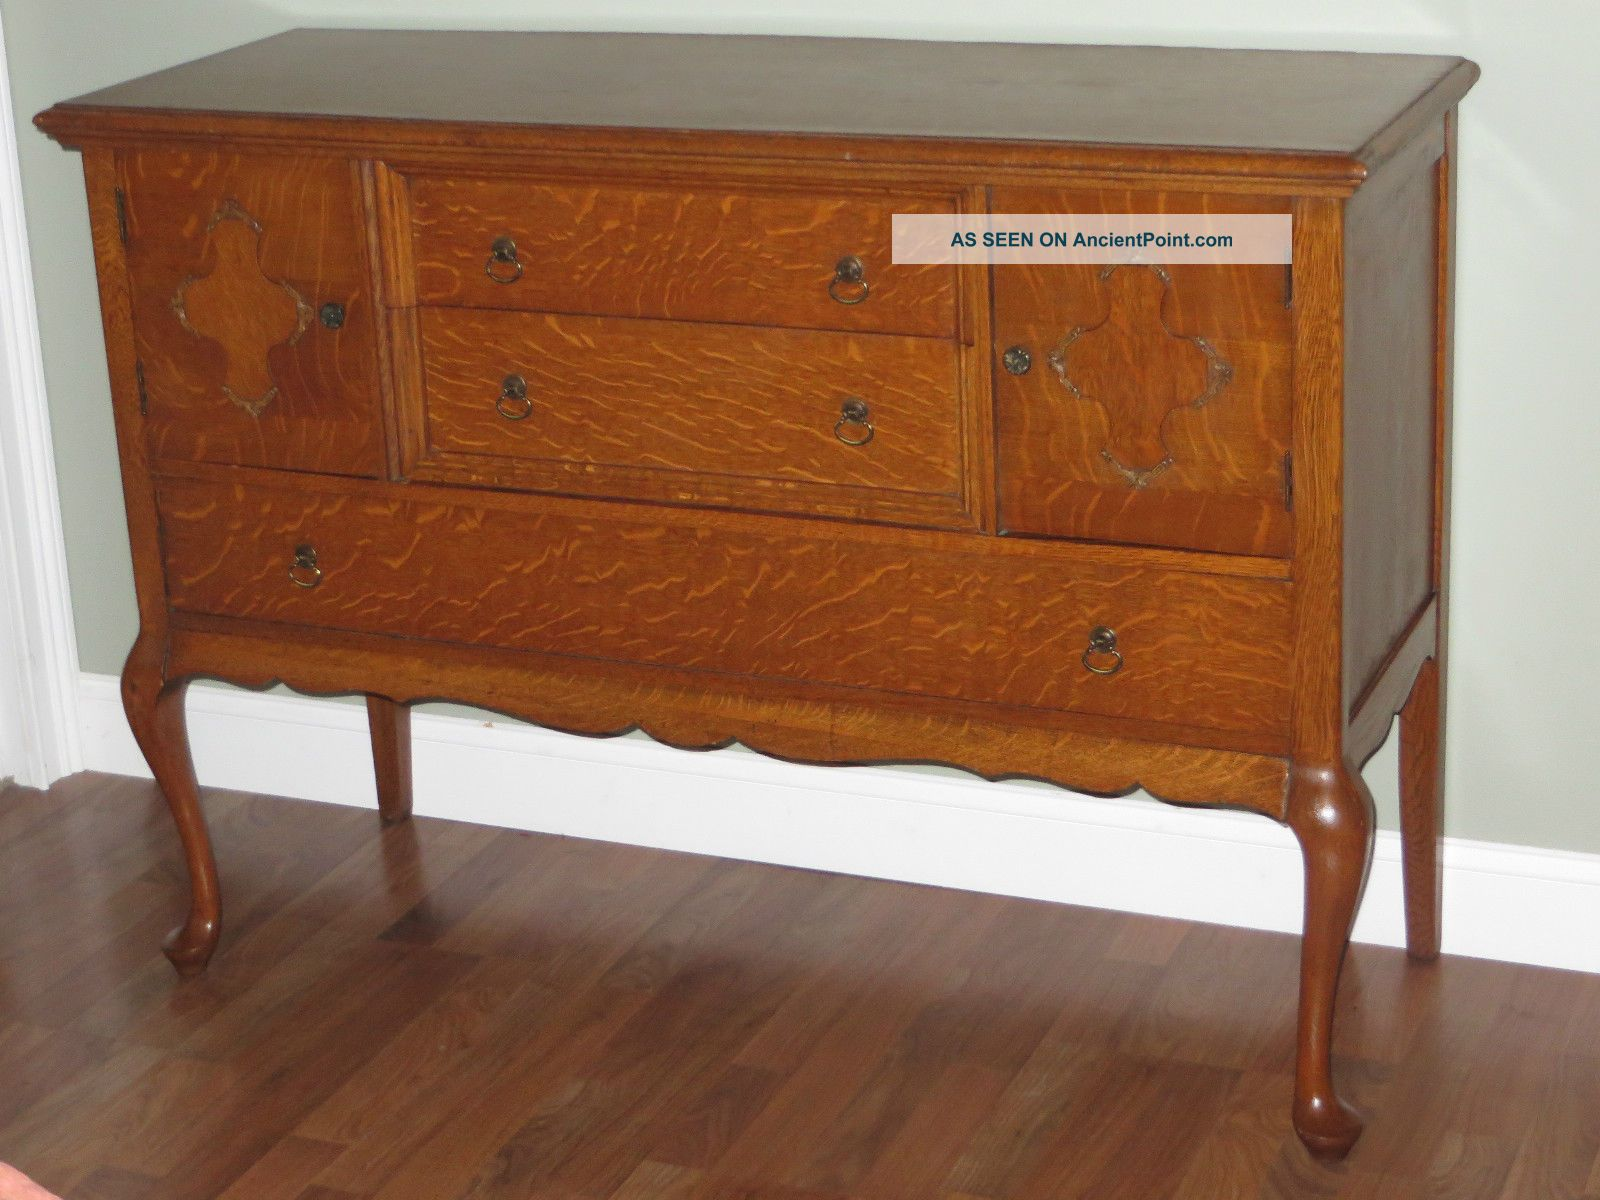 Antique Tiger Oak Sideboard Buffet Server Queen Anne Cabriole Legs Dovetails 1800-1899 photo